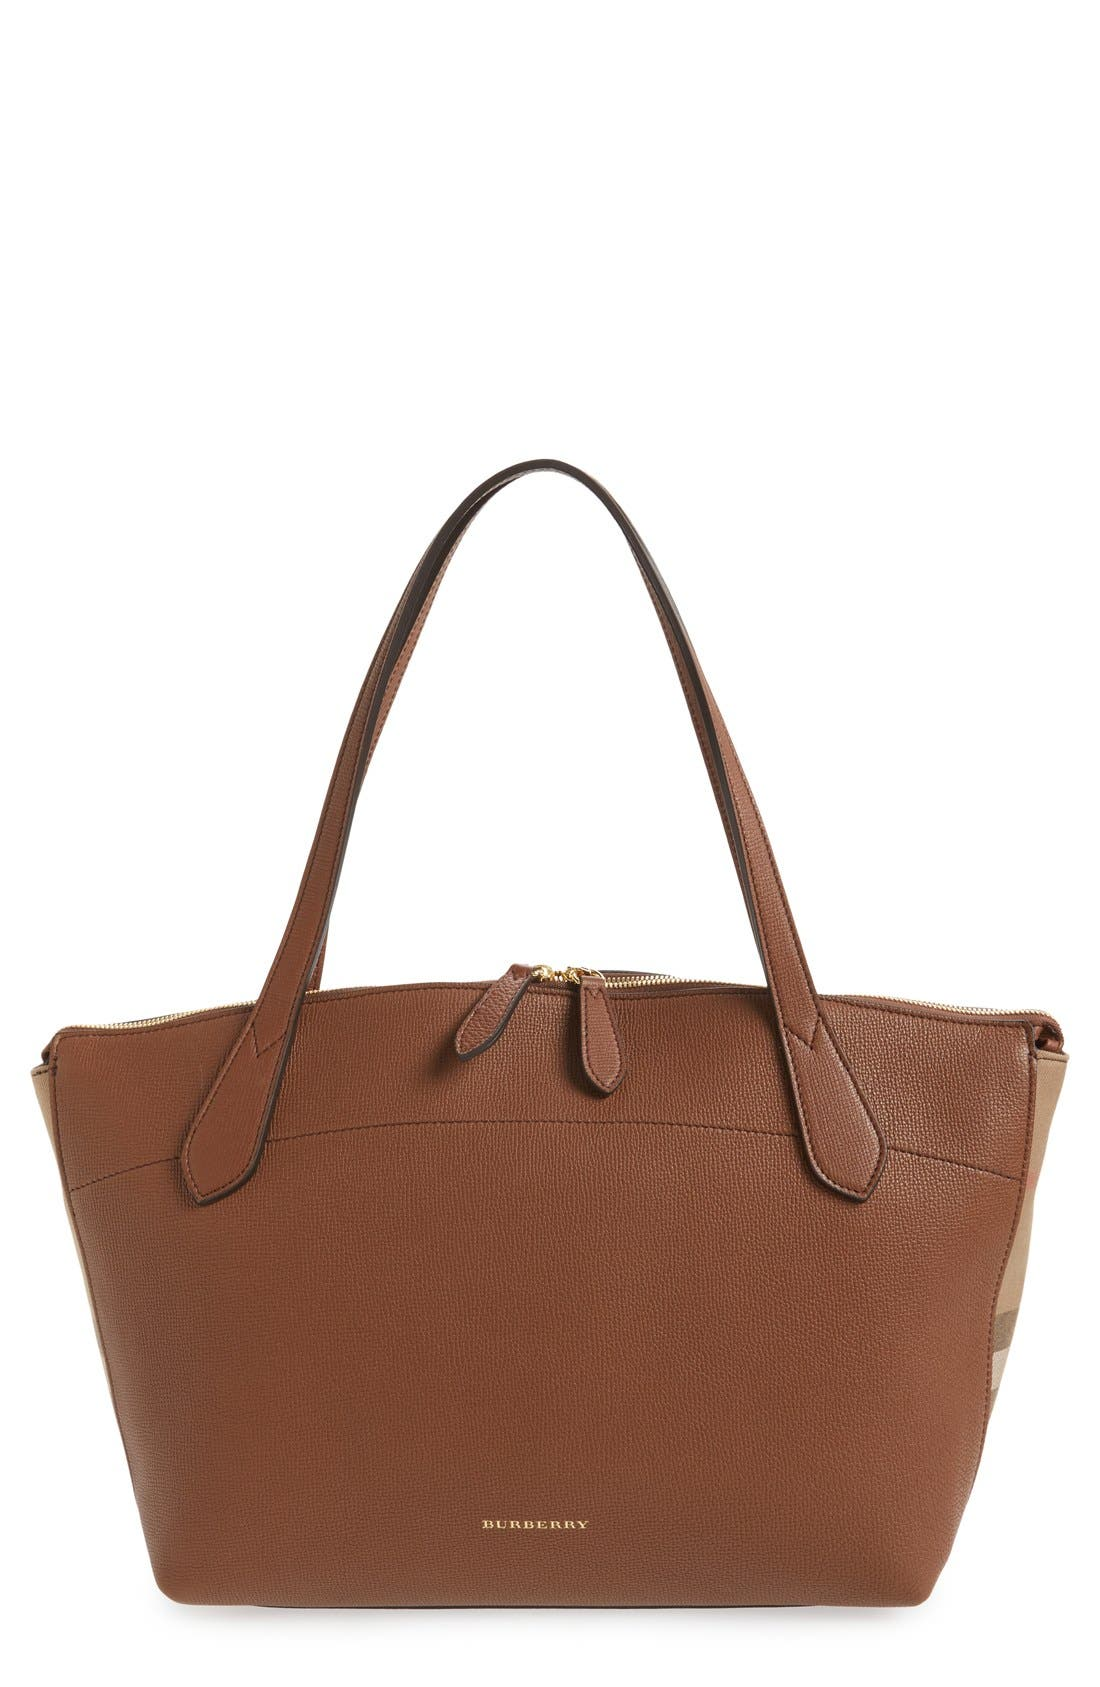 Welburn Check Leather Tote,                             Main thumbnail 1, color,                             200